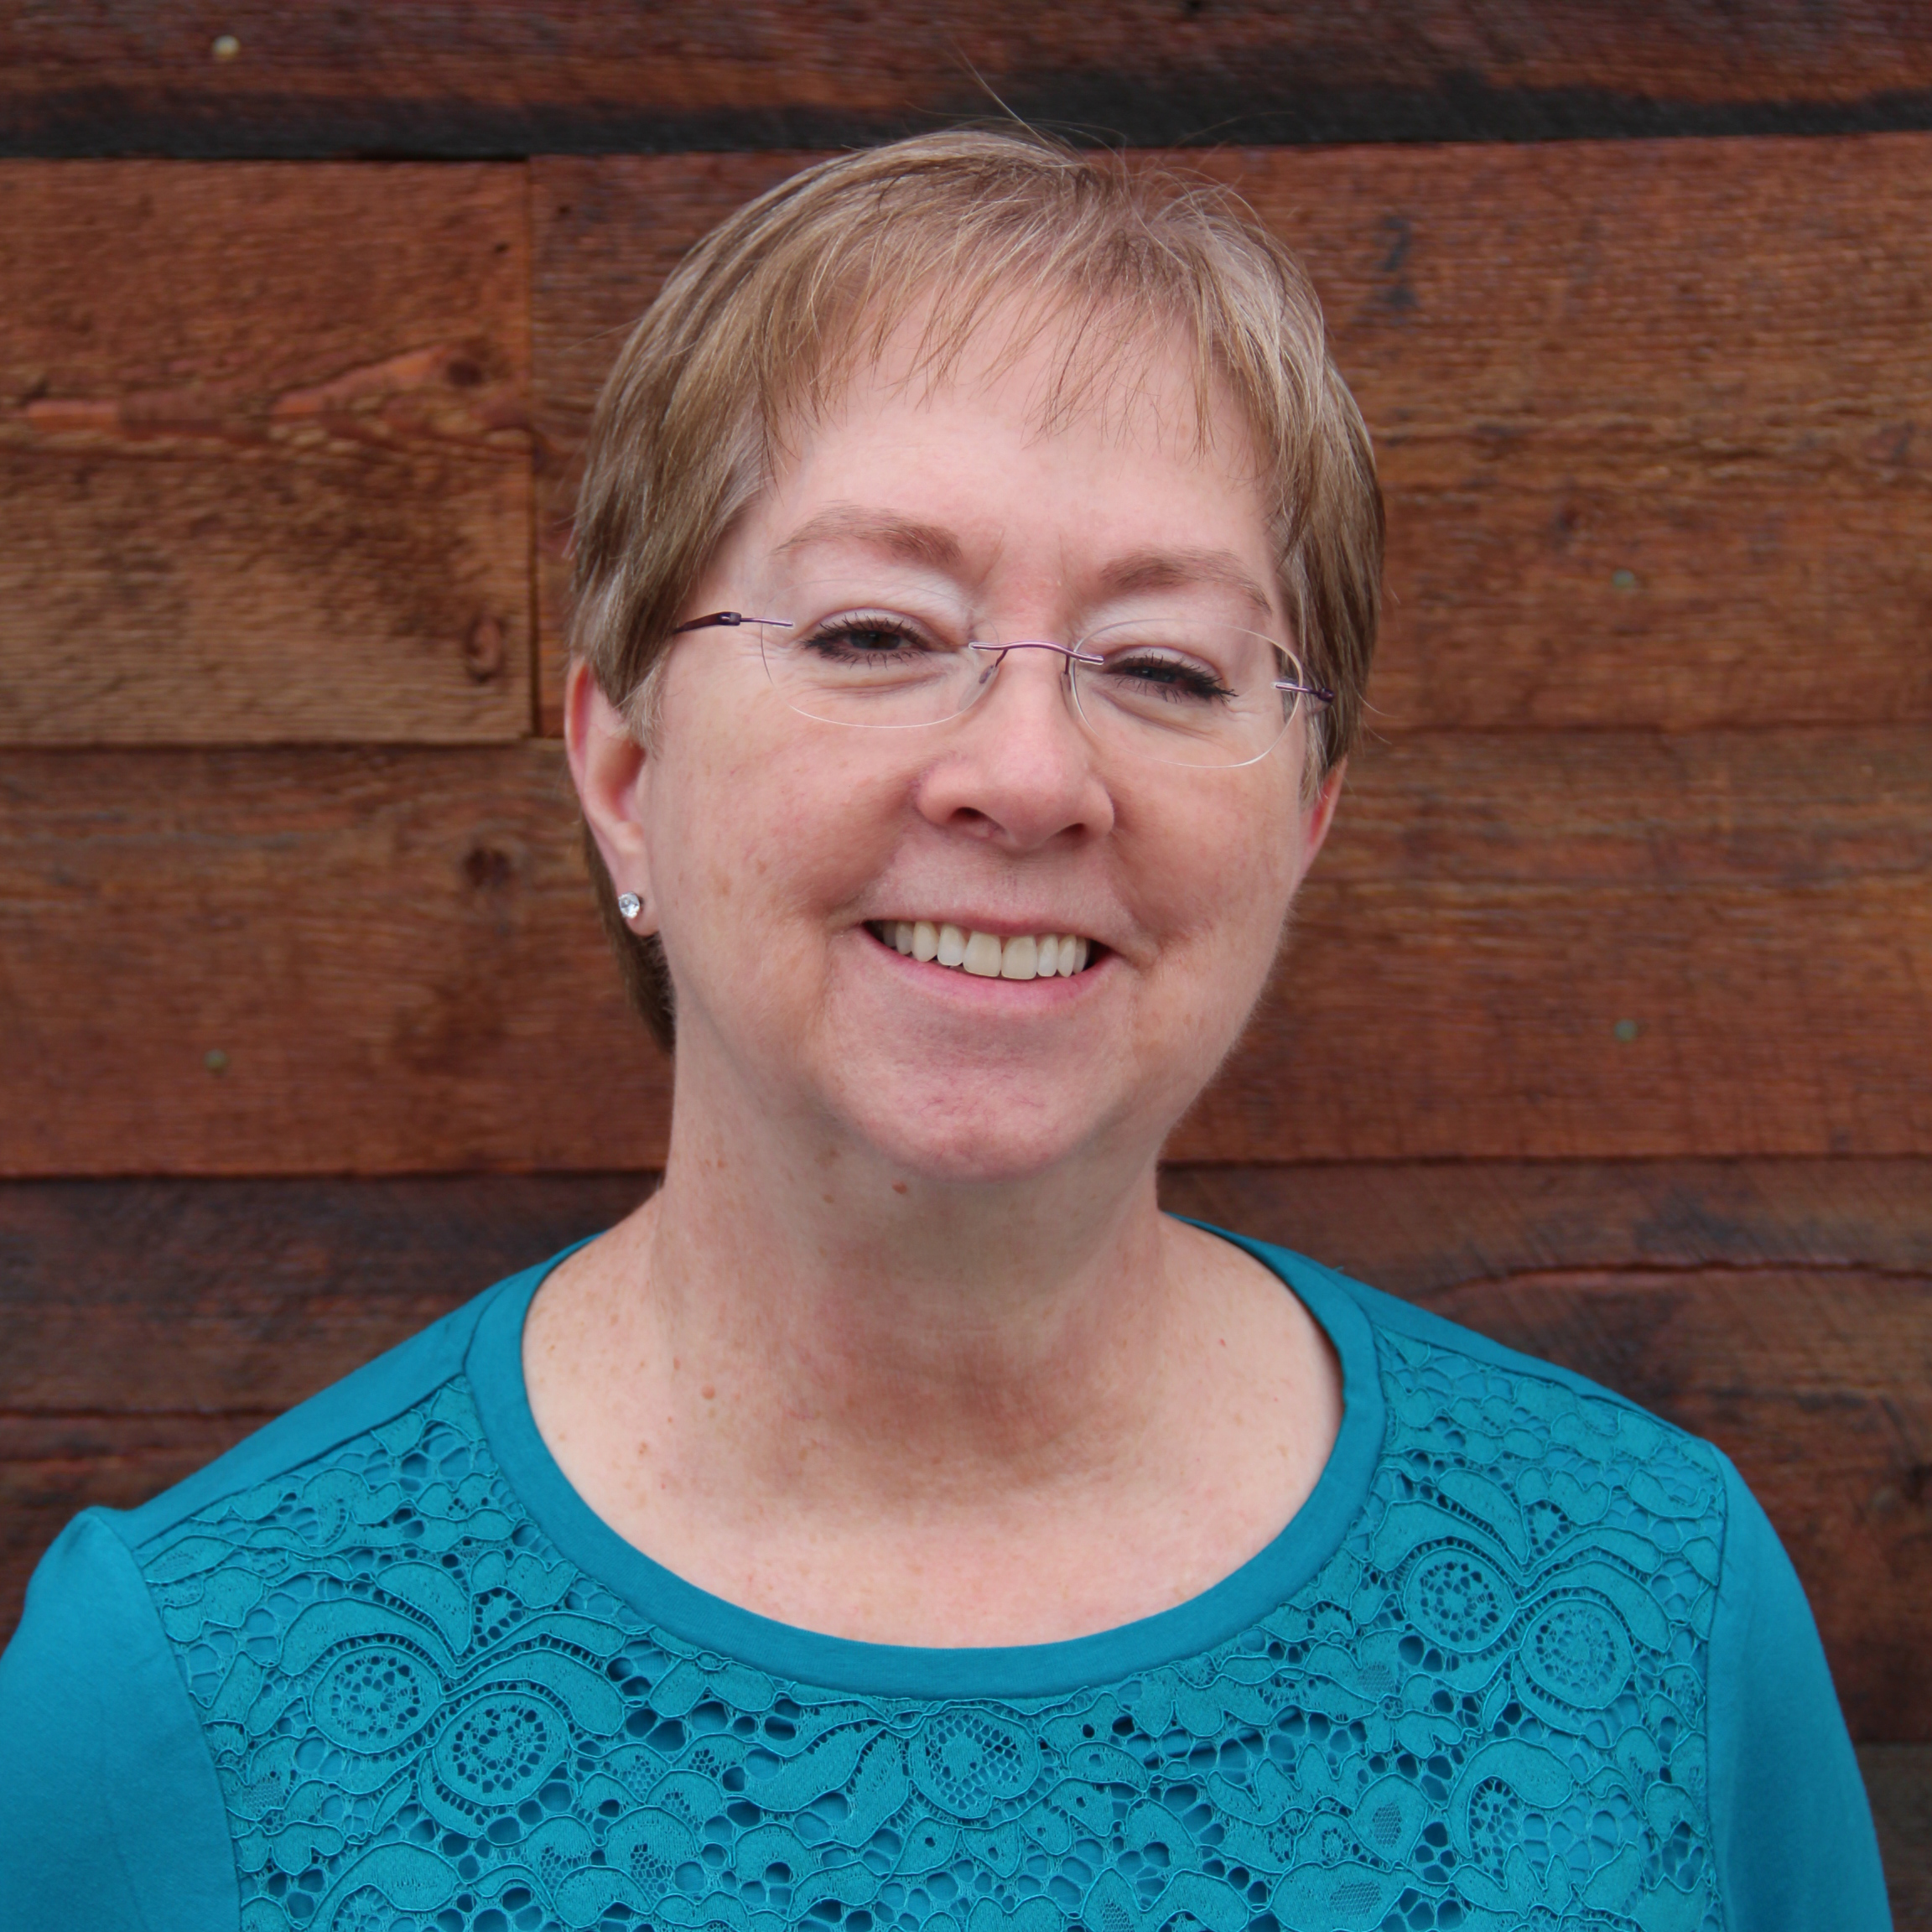 Janet | Dental Assistant - Janet was born in Colorado but calls Spokane her lifetime home. She has been assisting at our office since 2008 but has been working in dentistry for over 40 years and brings a wealth of knowledge and experience to our team.